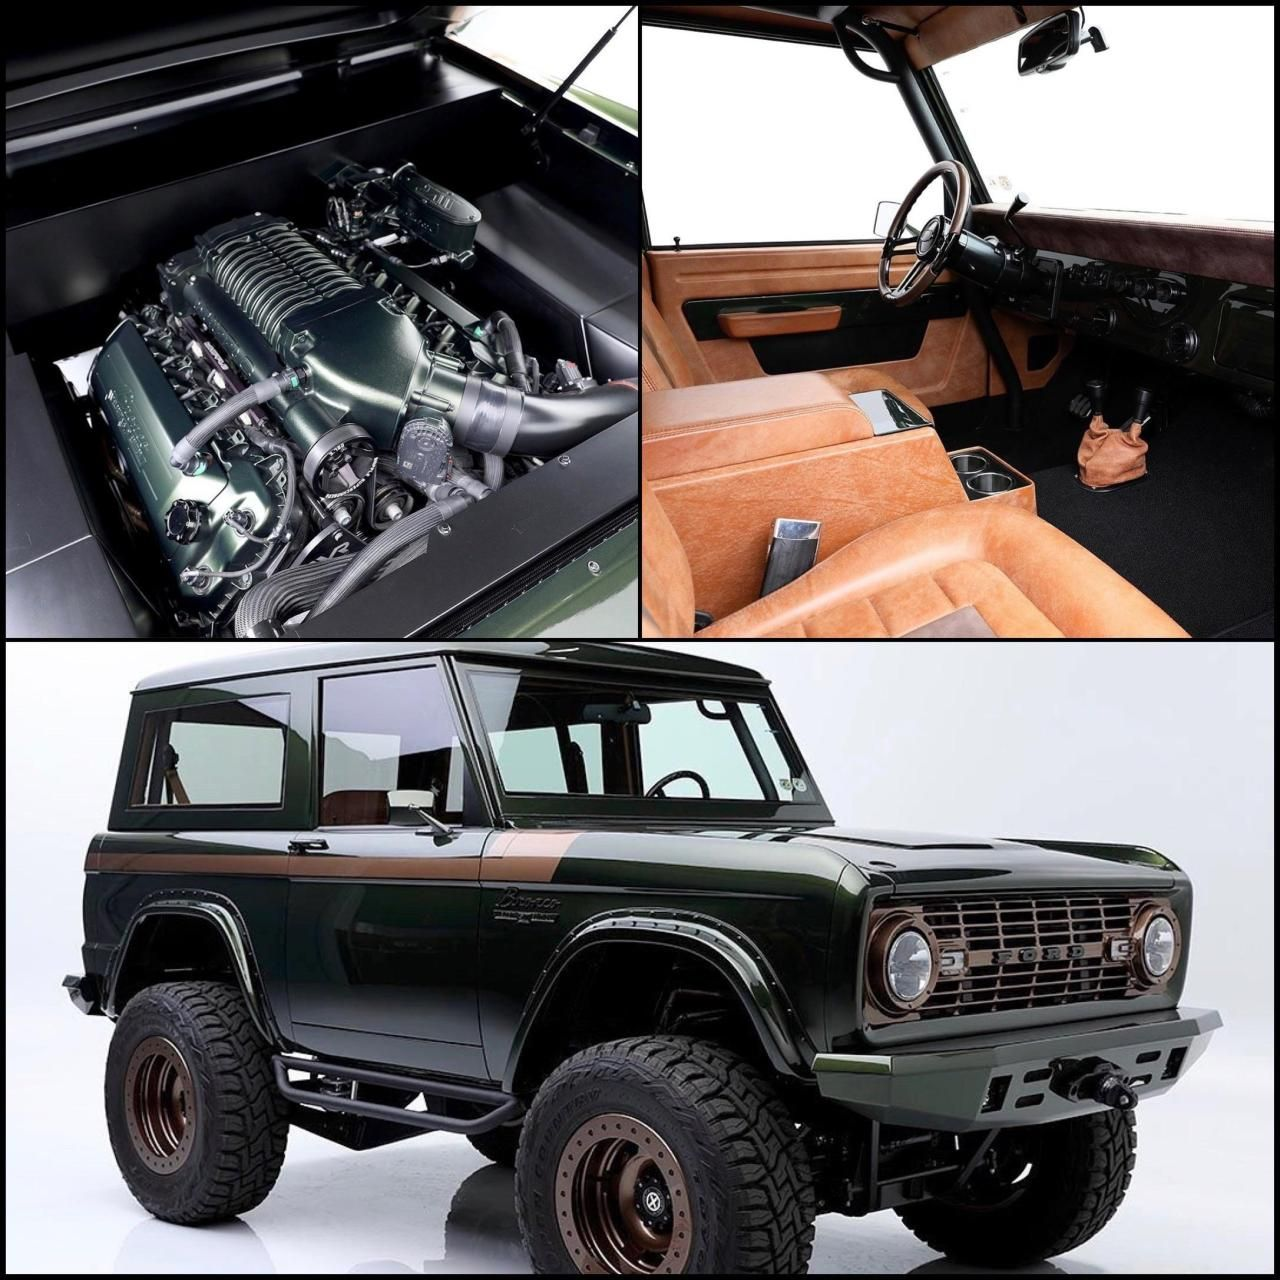 Ford Bronco Supercharged In 2020 Ford Bronco Car Accessories For Girls Car Ford